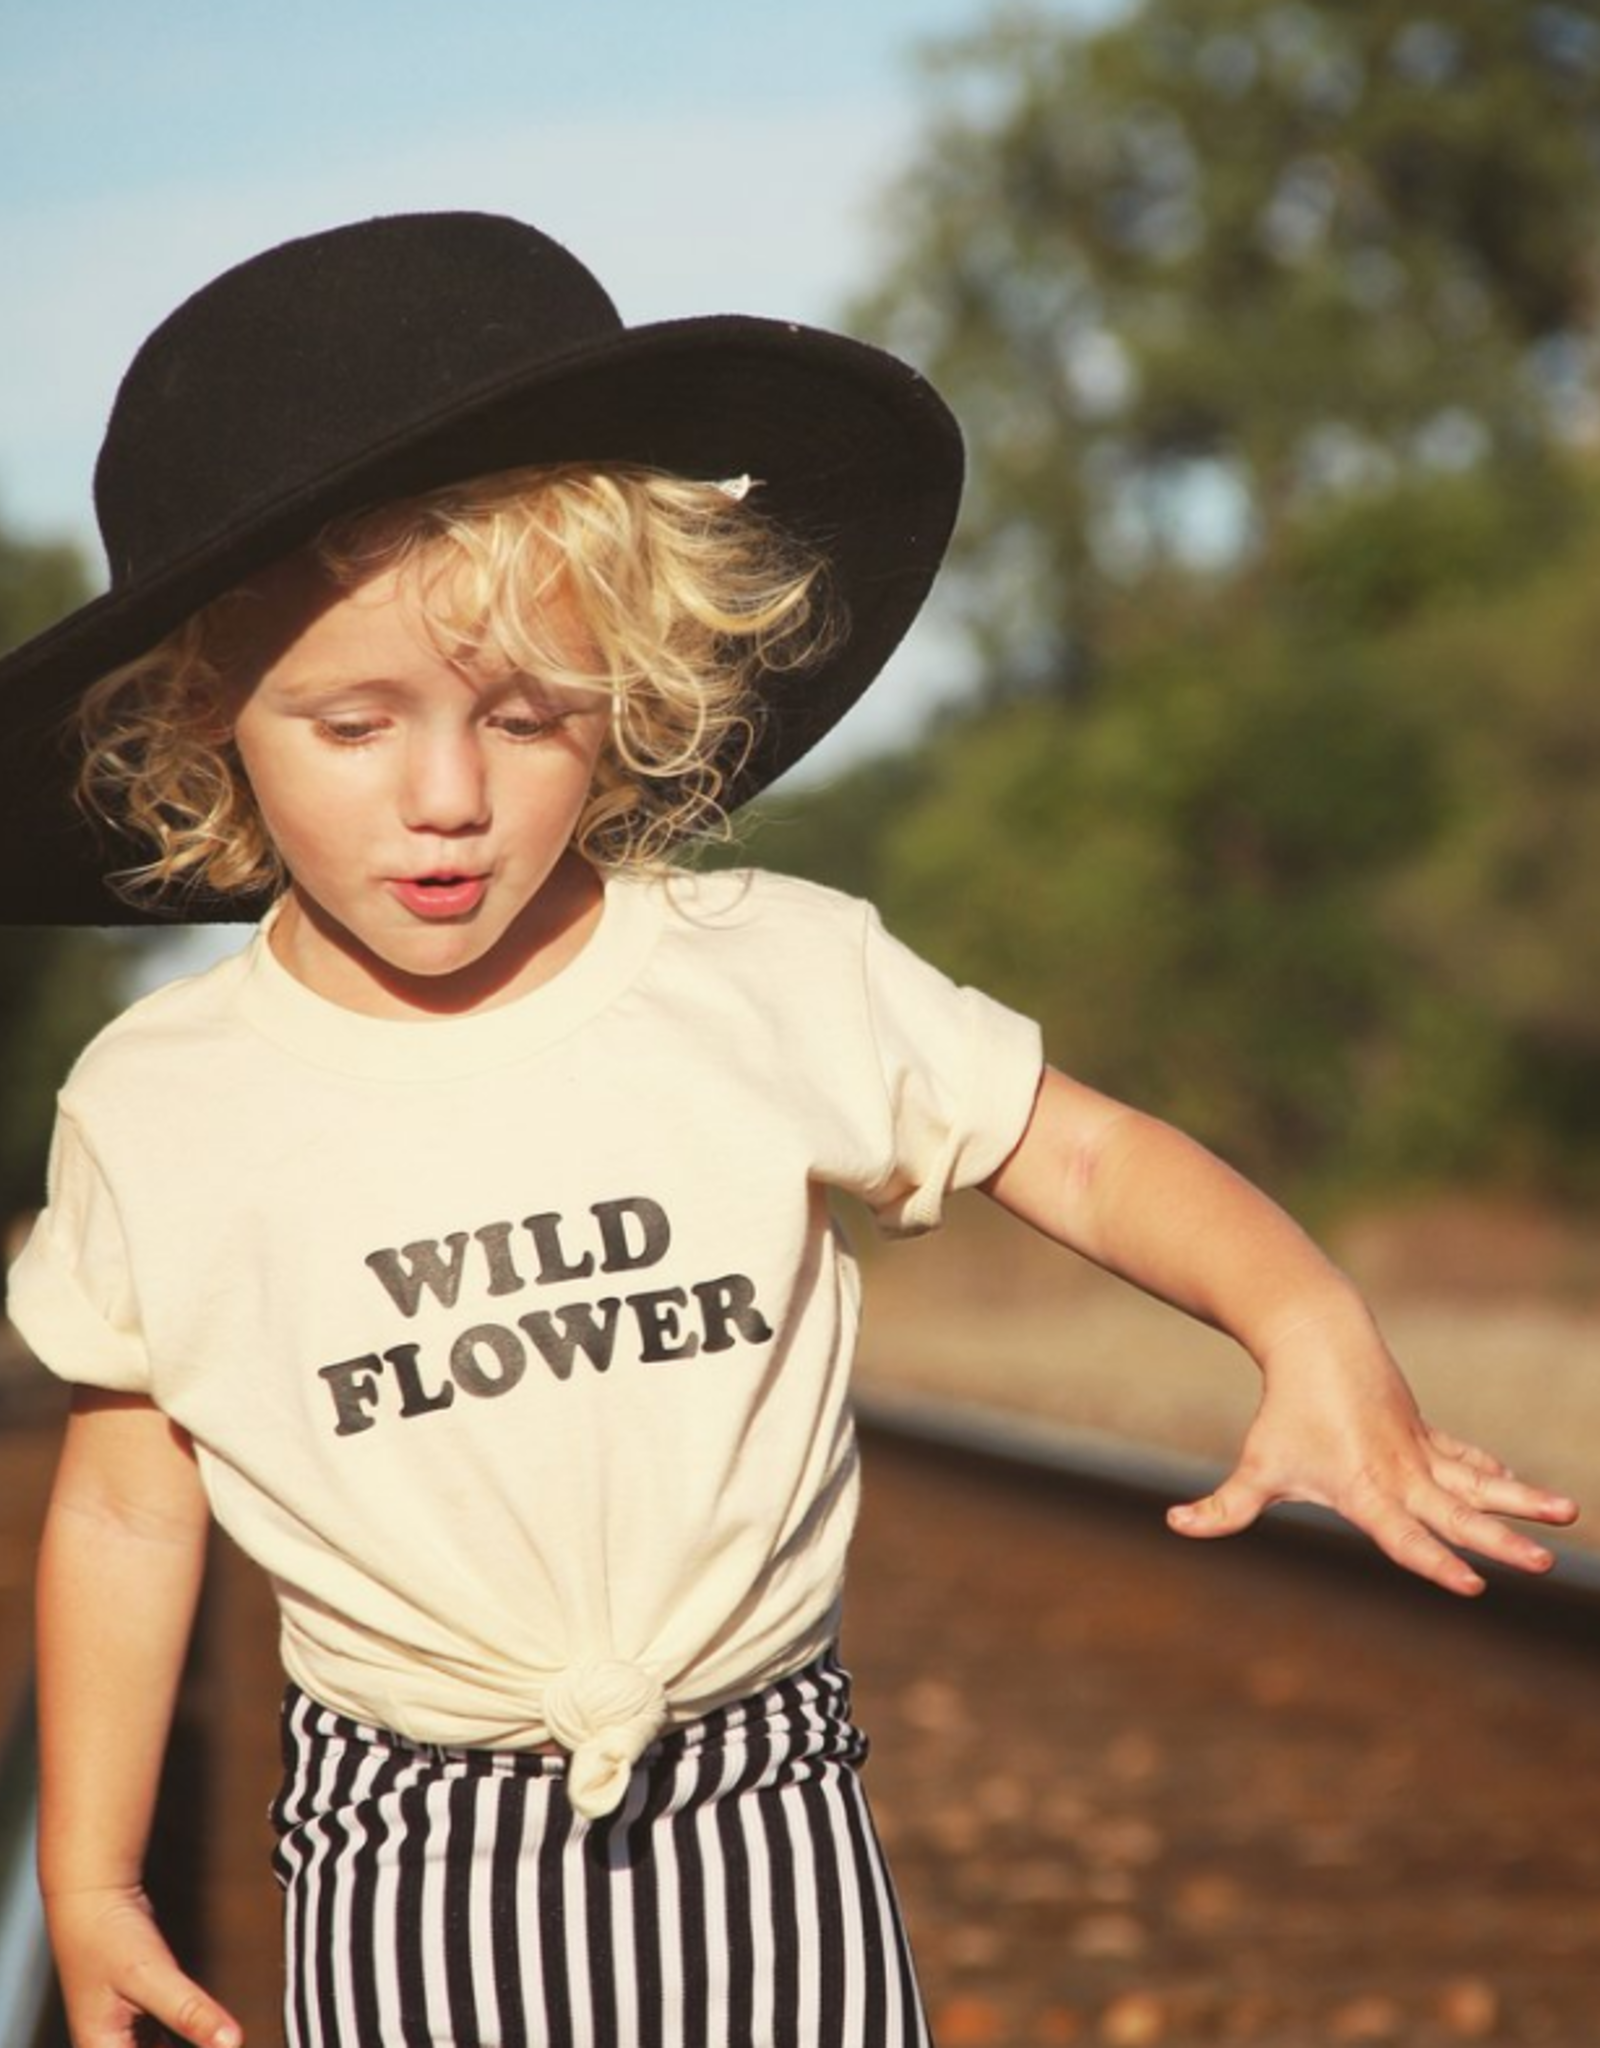 savage seeds Savage kid's tee -Wild Flower